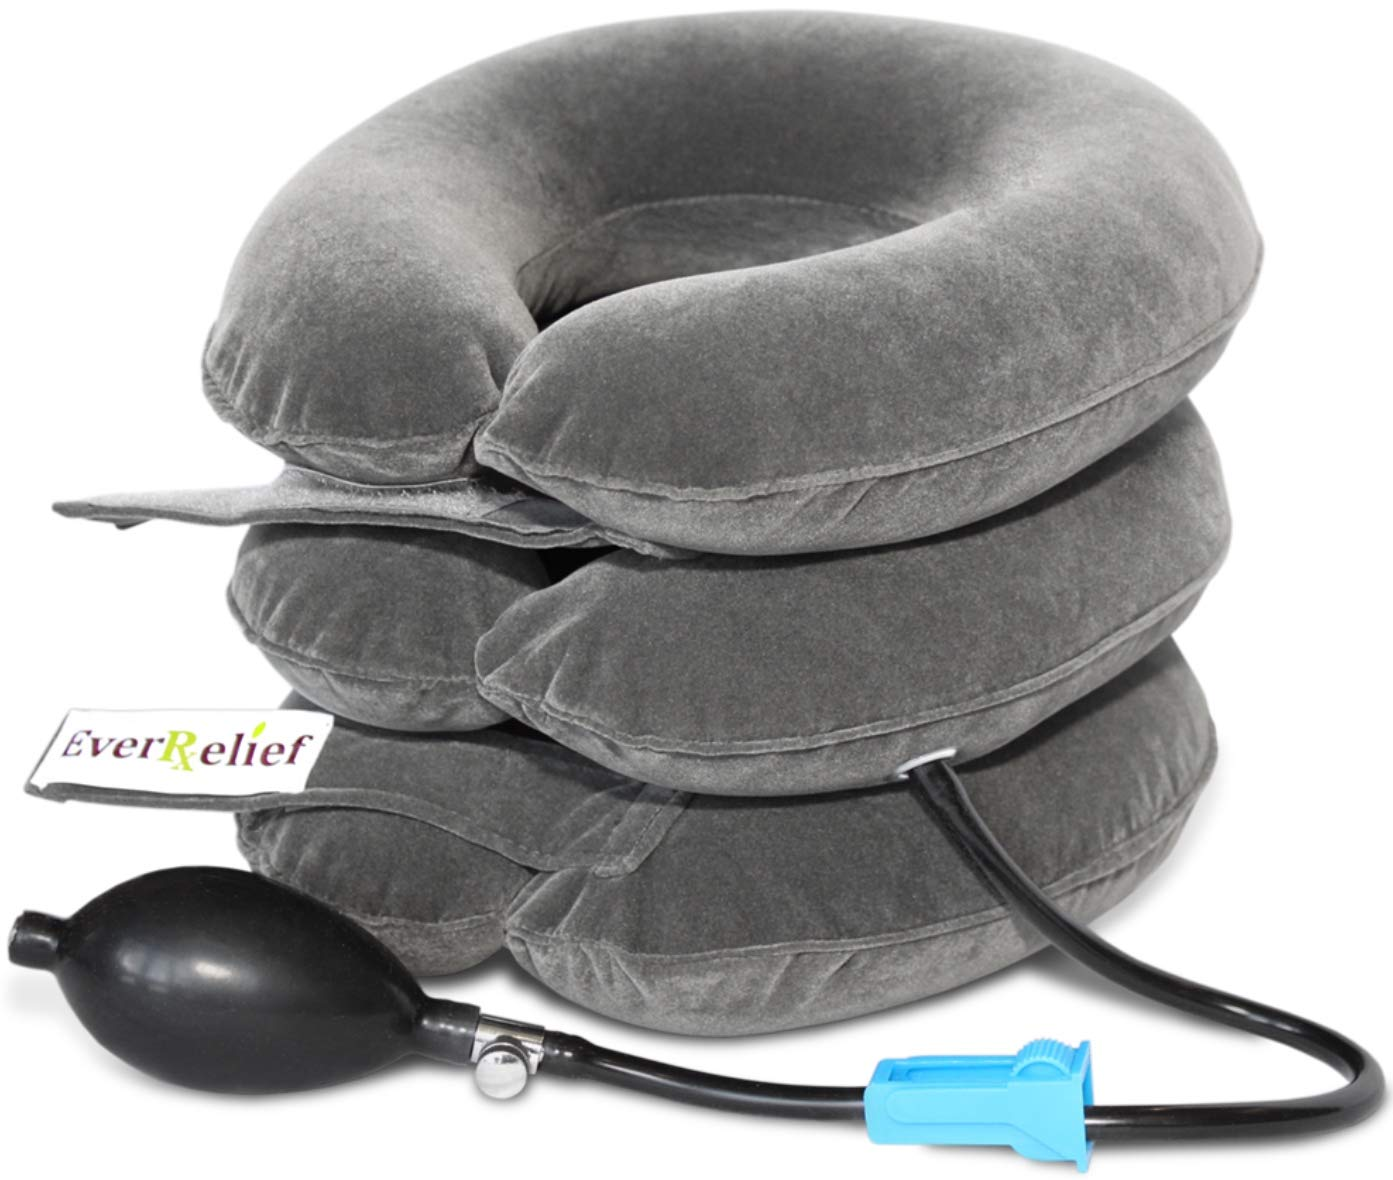 Cervical Neck Traction Device by EverRelief - Inflatable & Adjustable Neck Stretcher Collar - at Home Traction for Neck Pain Relief